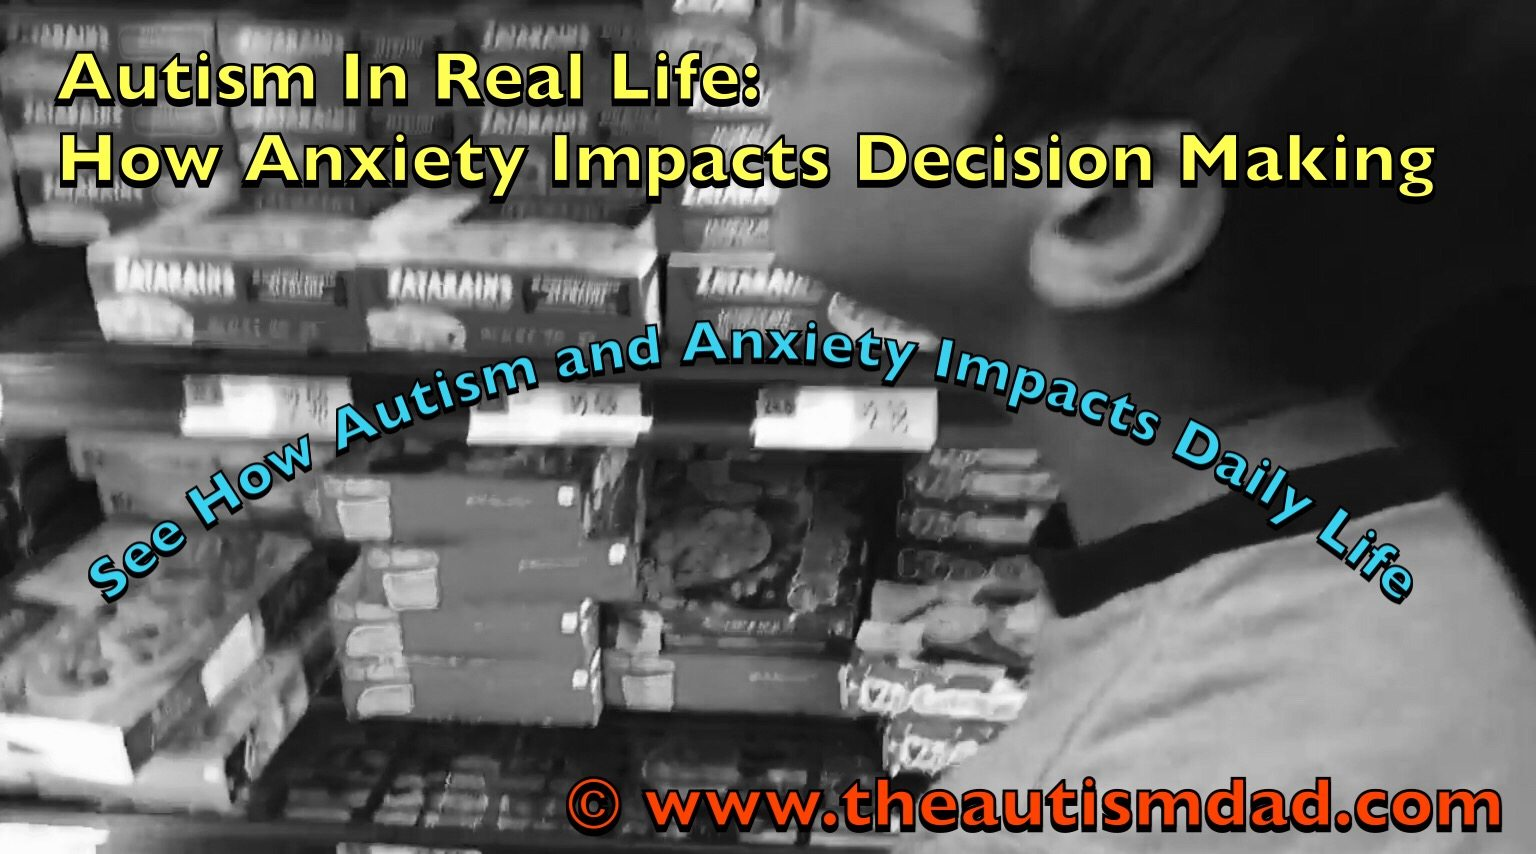 #Autism In Real Life: How Anxiety Impacts Decision Making